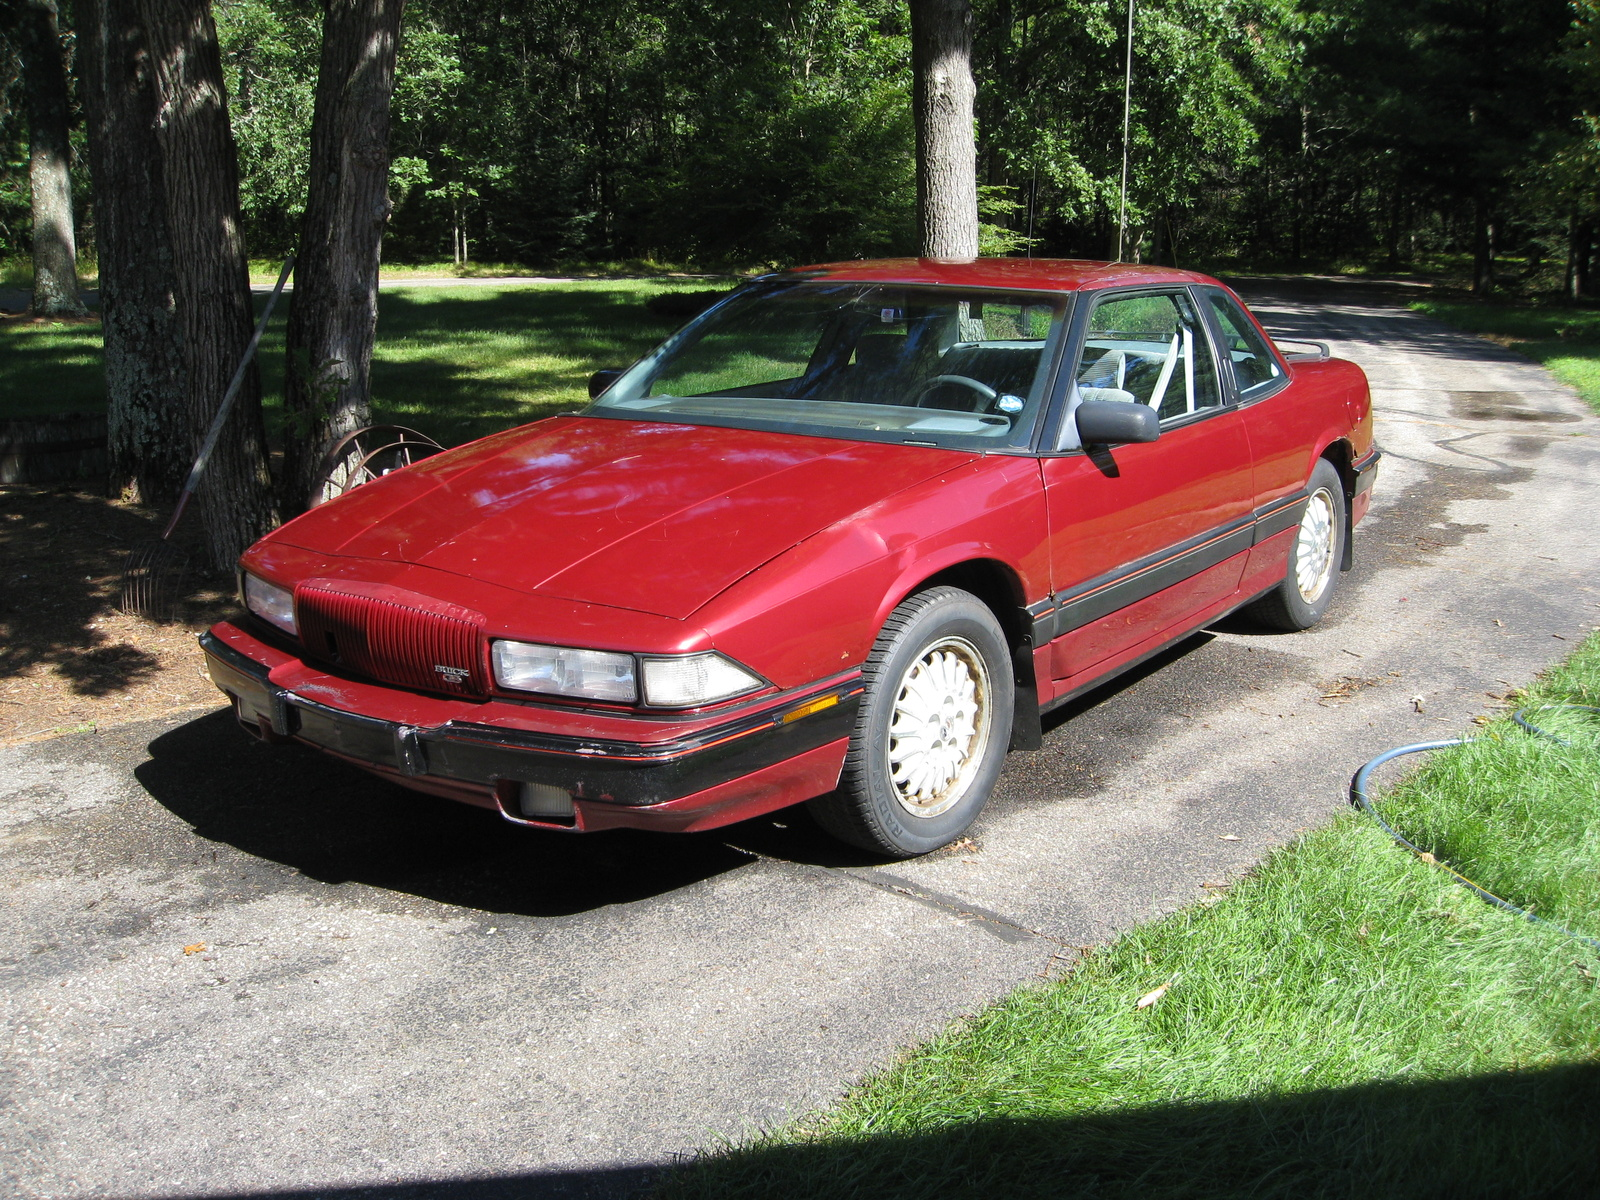 1991 Buick Regal 2 Dr Custom Coupe picture